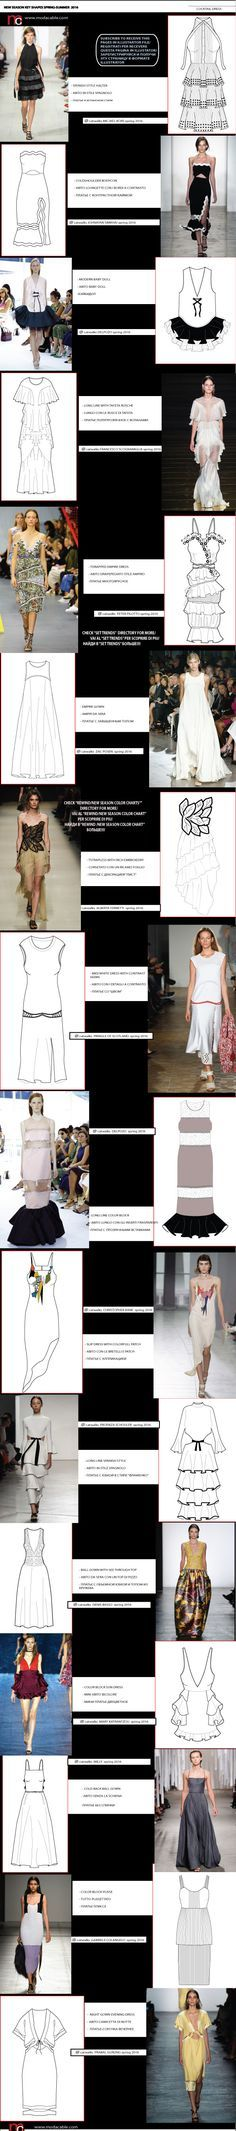 only at www.modacable.com.. key shapes spring 2016, in order to see this page and load the vector format please register.its free!!